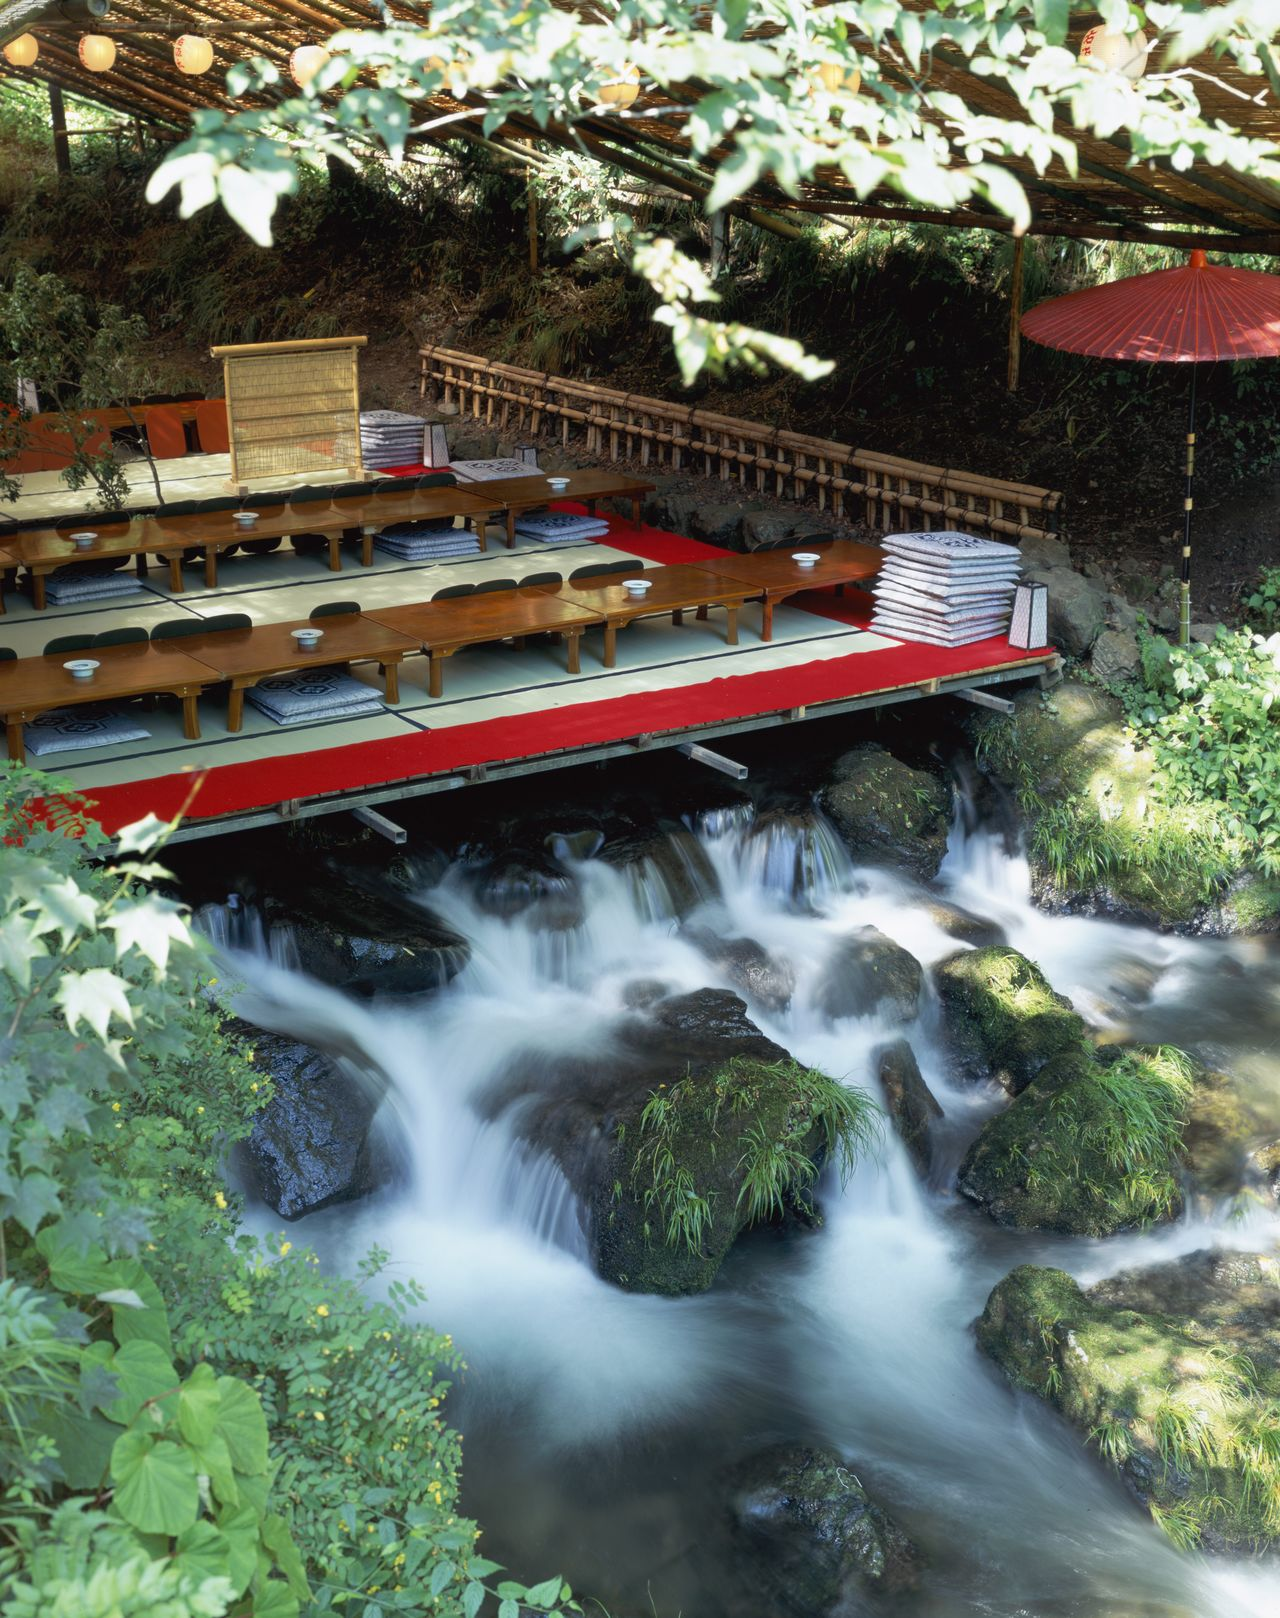 A platform to enjoy the cool waters of the Kibune River while dining.  Photo taken in 2009. (© Jiji)